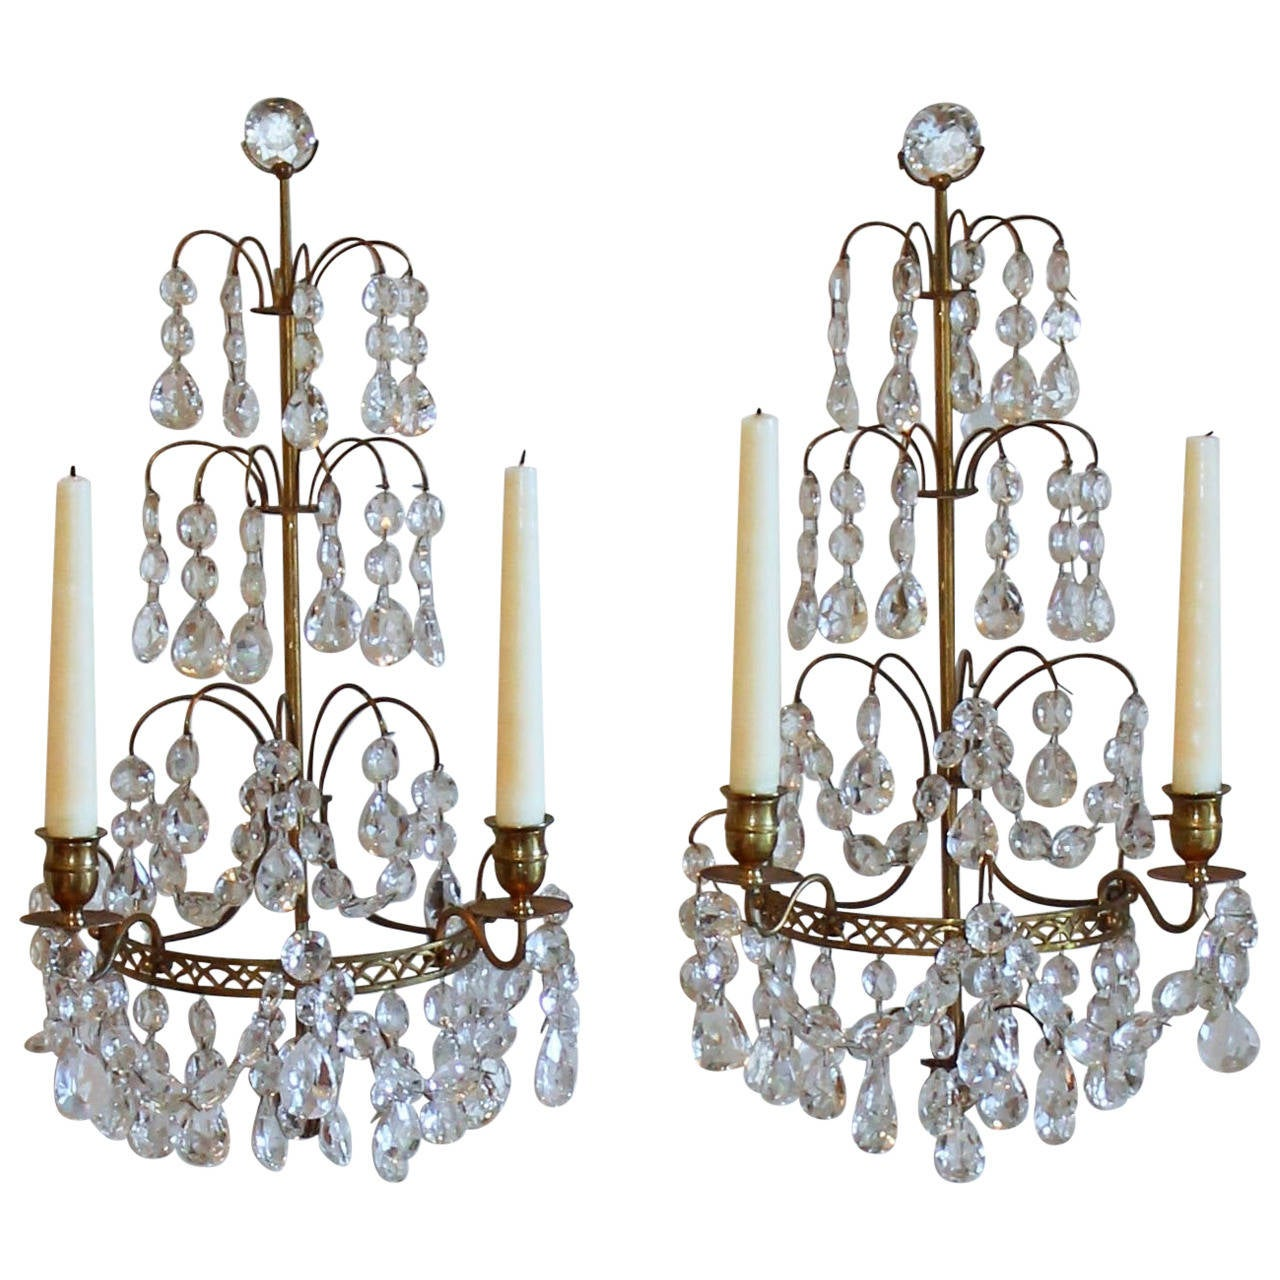 Pair Of Swedish Gustavian Style Crystal And Bronze Candle Wall Sconces For